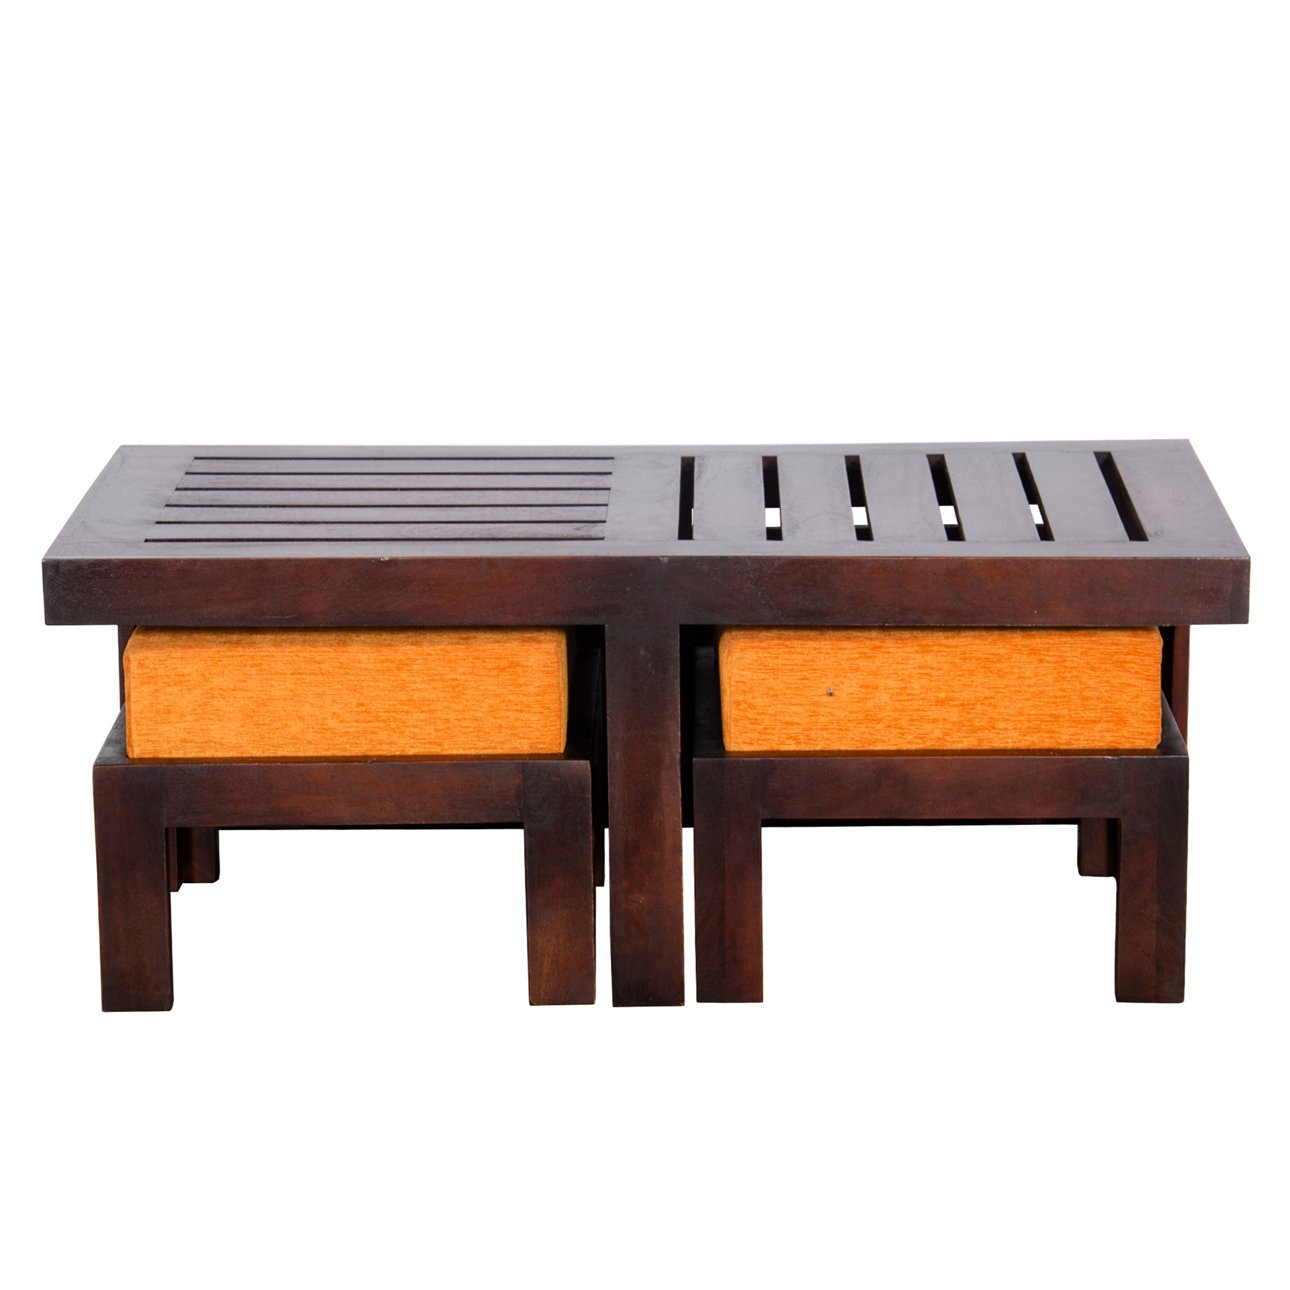 Upto 70% off on Solid Wood Furniture By Amazon | Altavista Perk Solid Wood Coffee Table (Brown) @ Rs.5,999